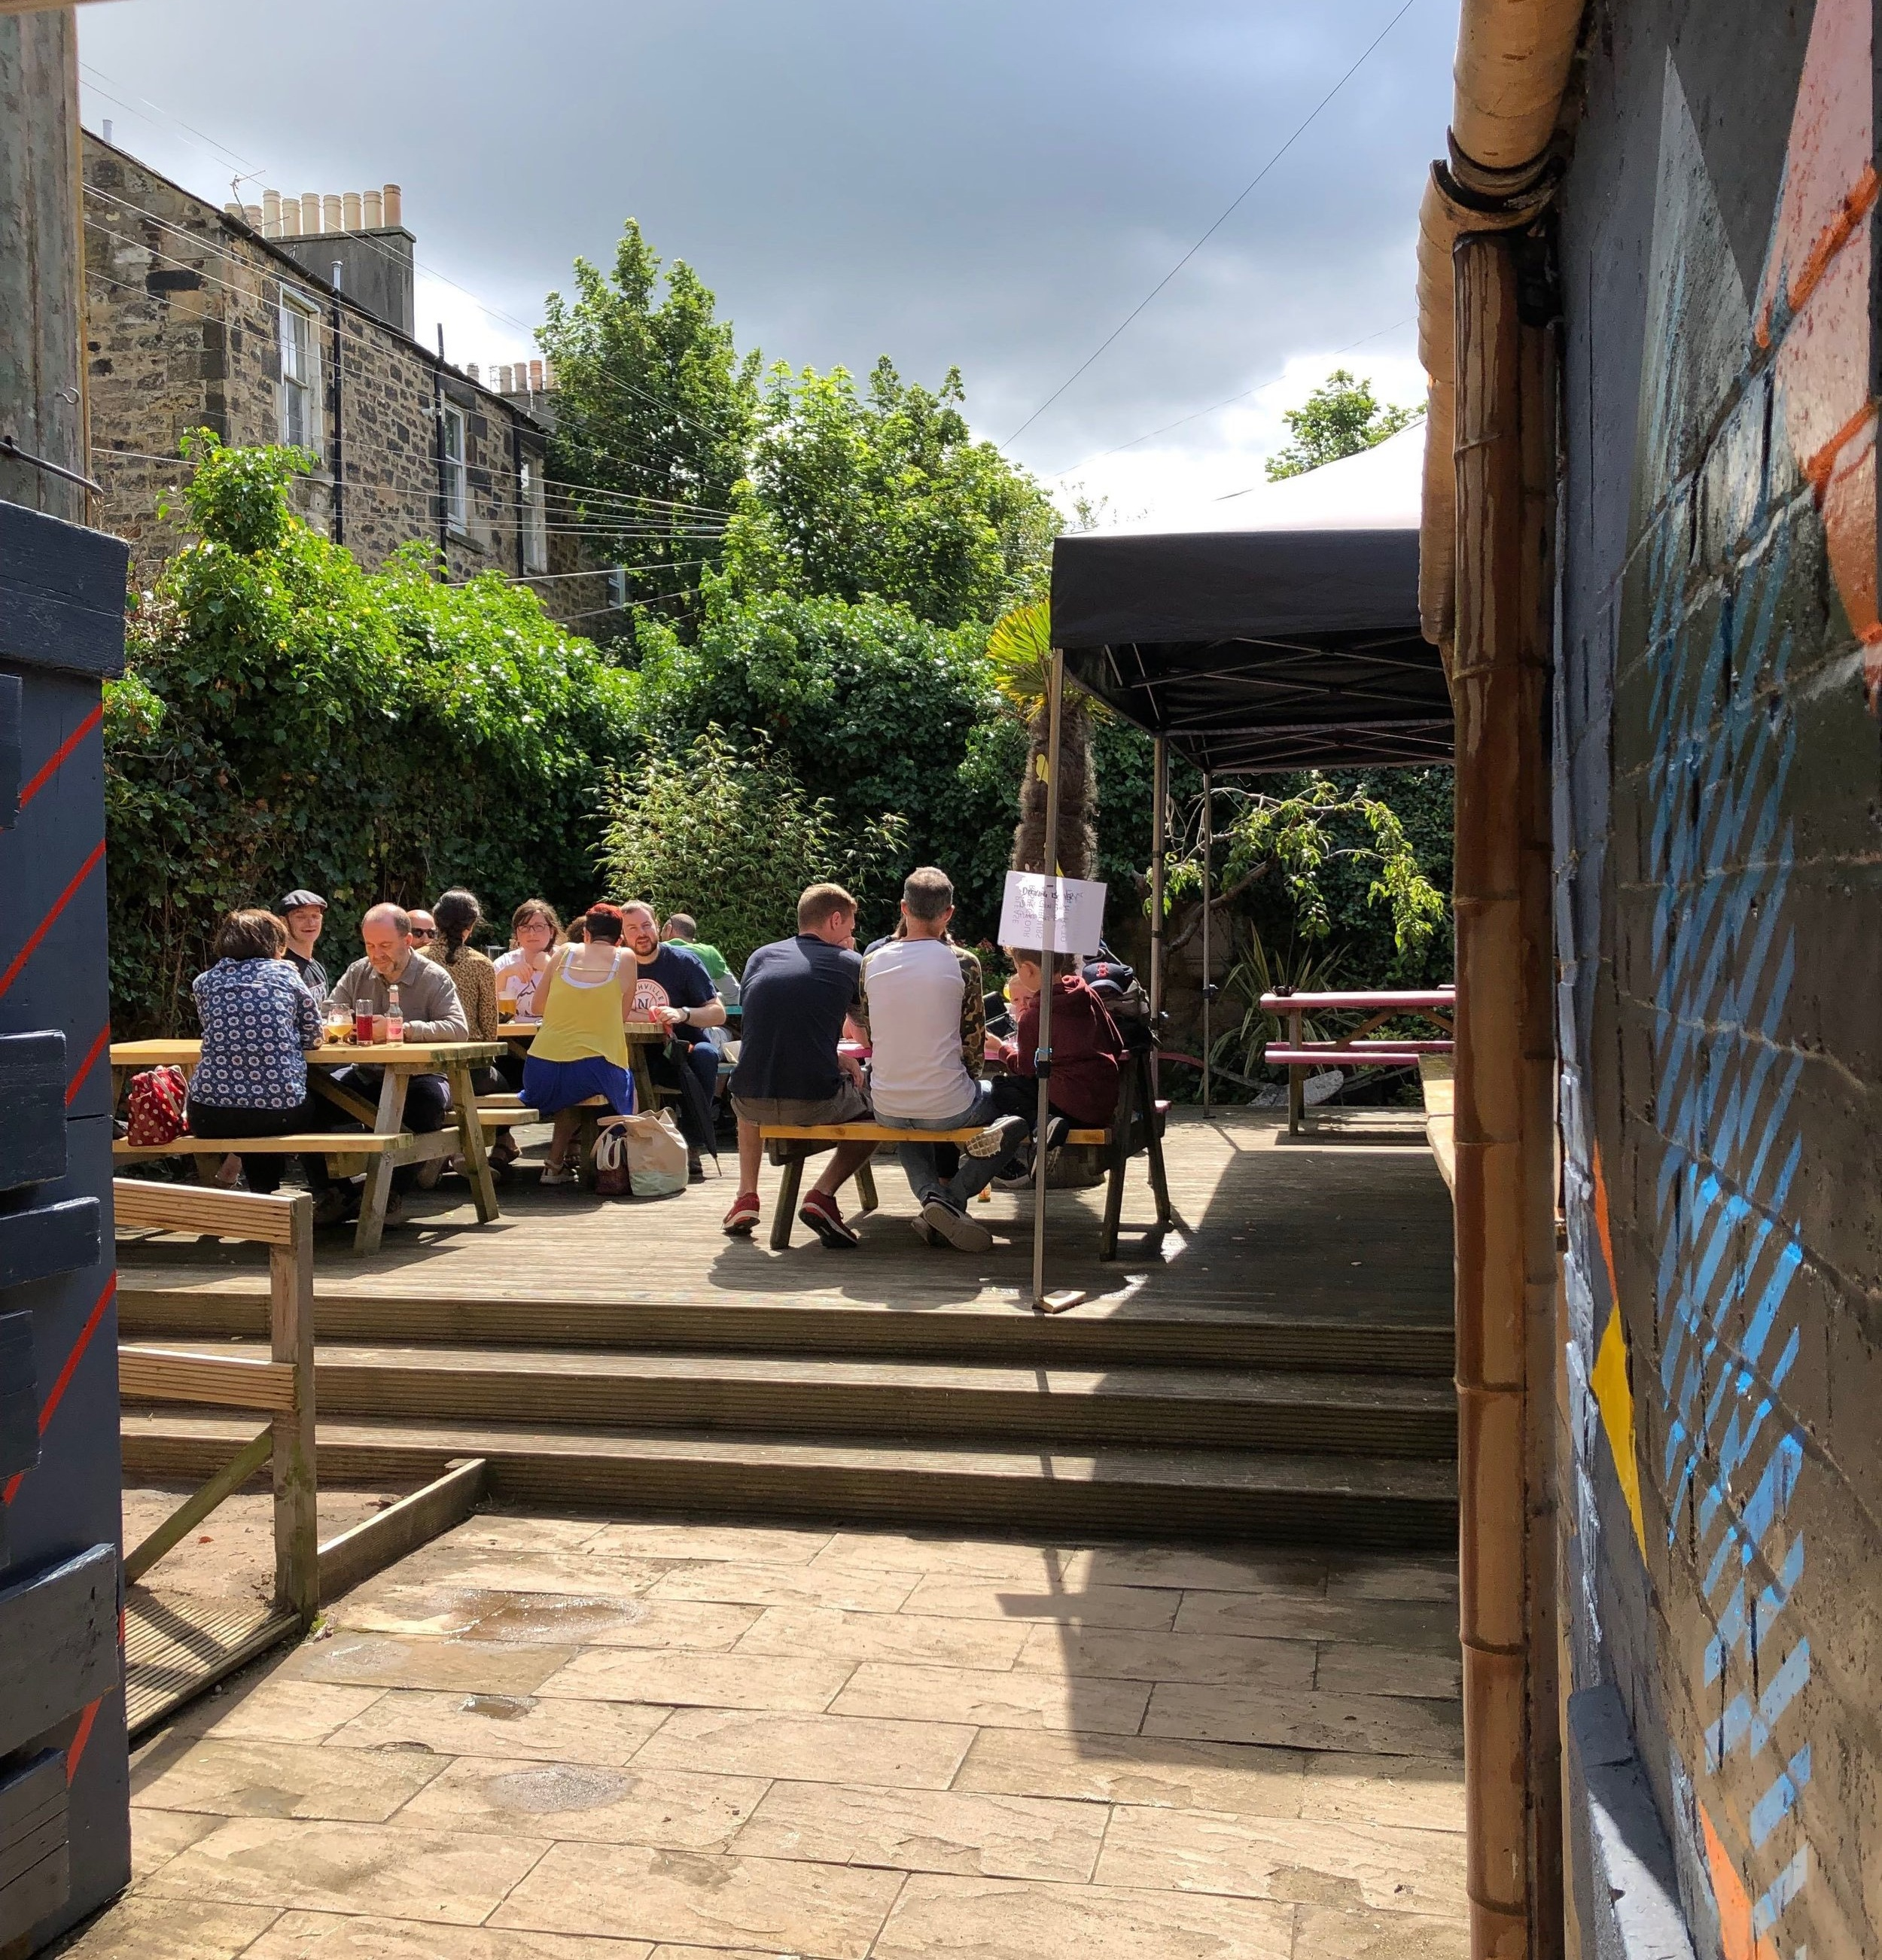 Beer Garden and Street Food - Have a seat in our secluded beer garden, and be sure to grab a bite to eat from our friends at Jones & Son while you're here. Check our social media feeds for more information on daily food availability.